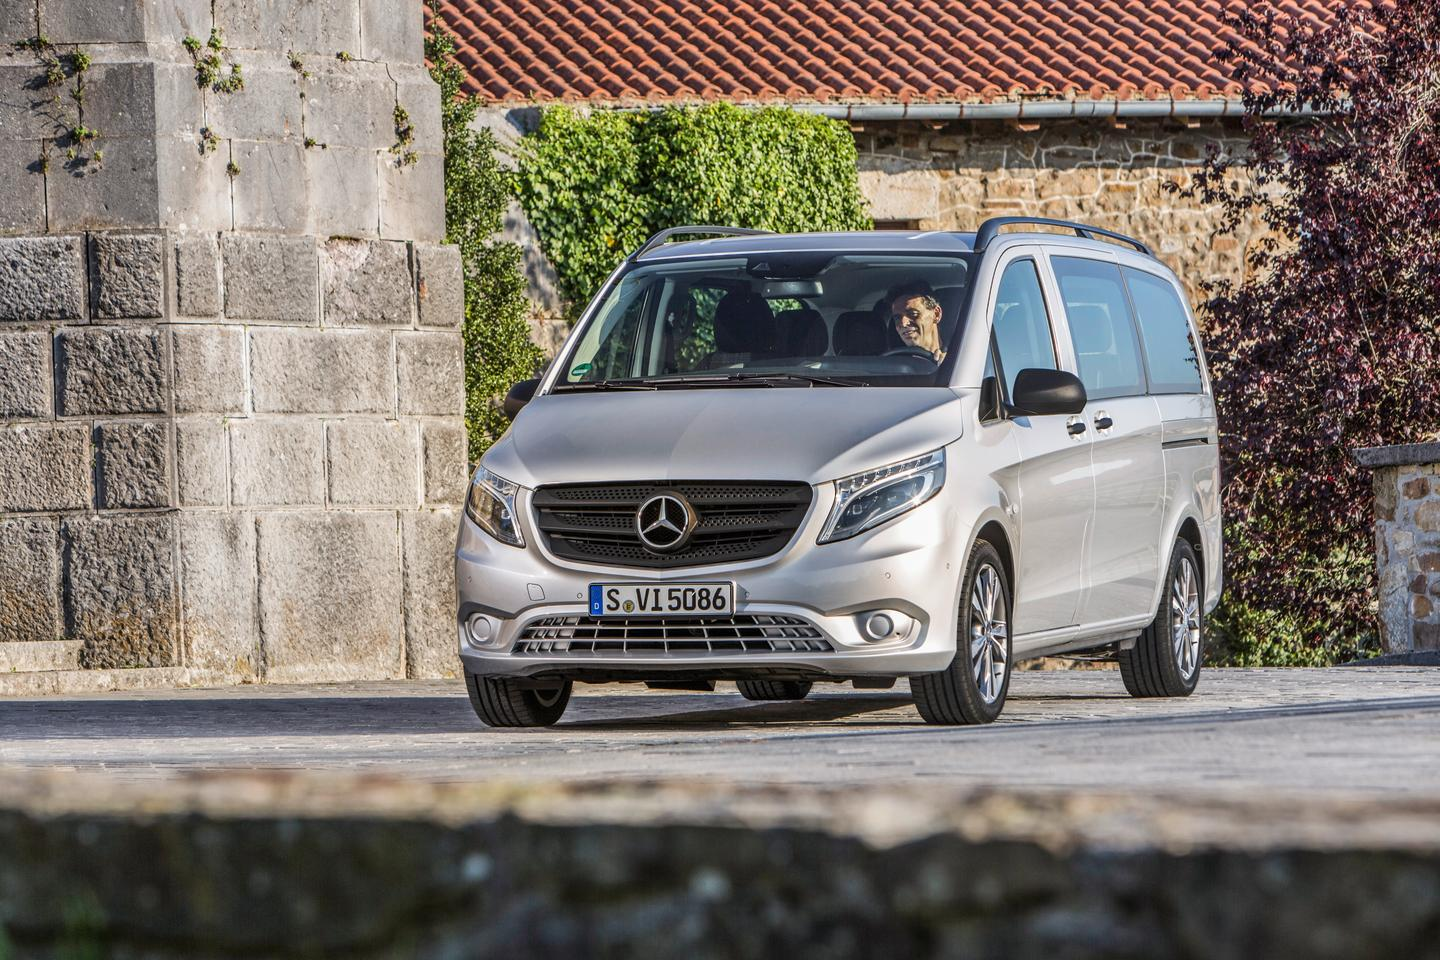 The Mercedes-Benz Vito has a four-wheel drive option for more rugged areas